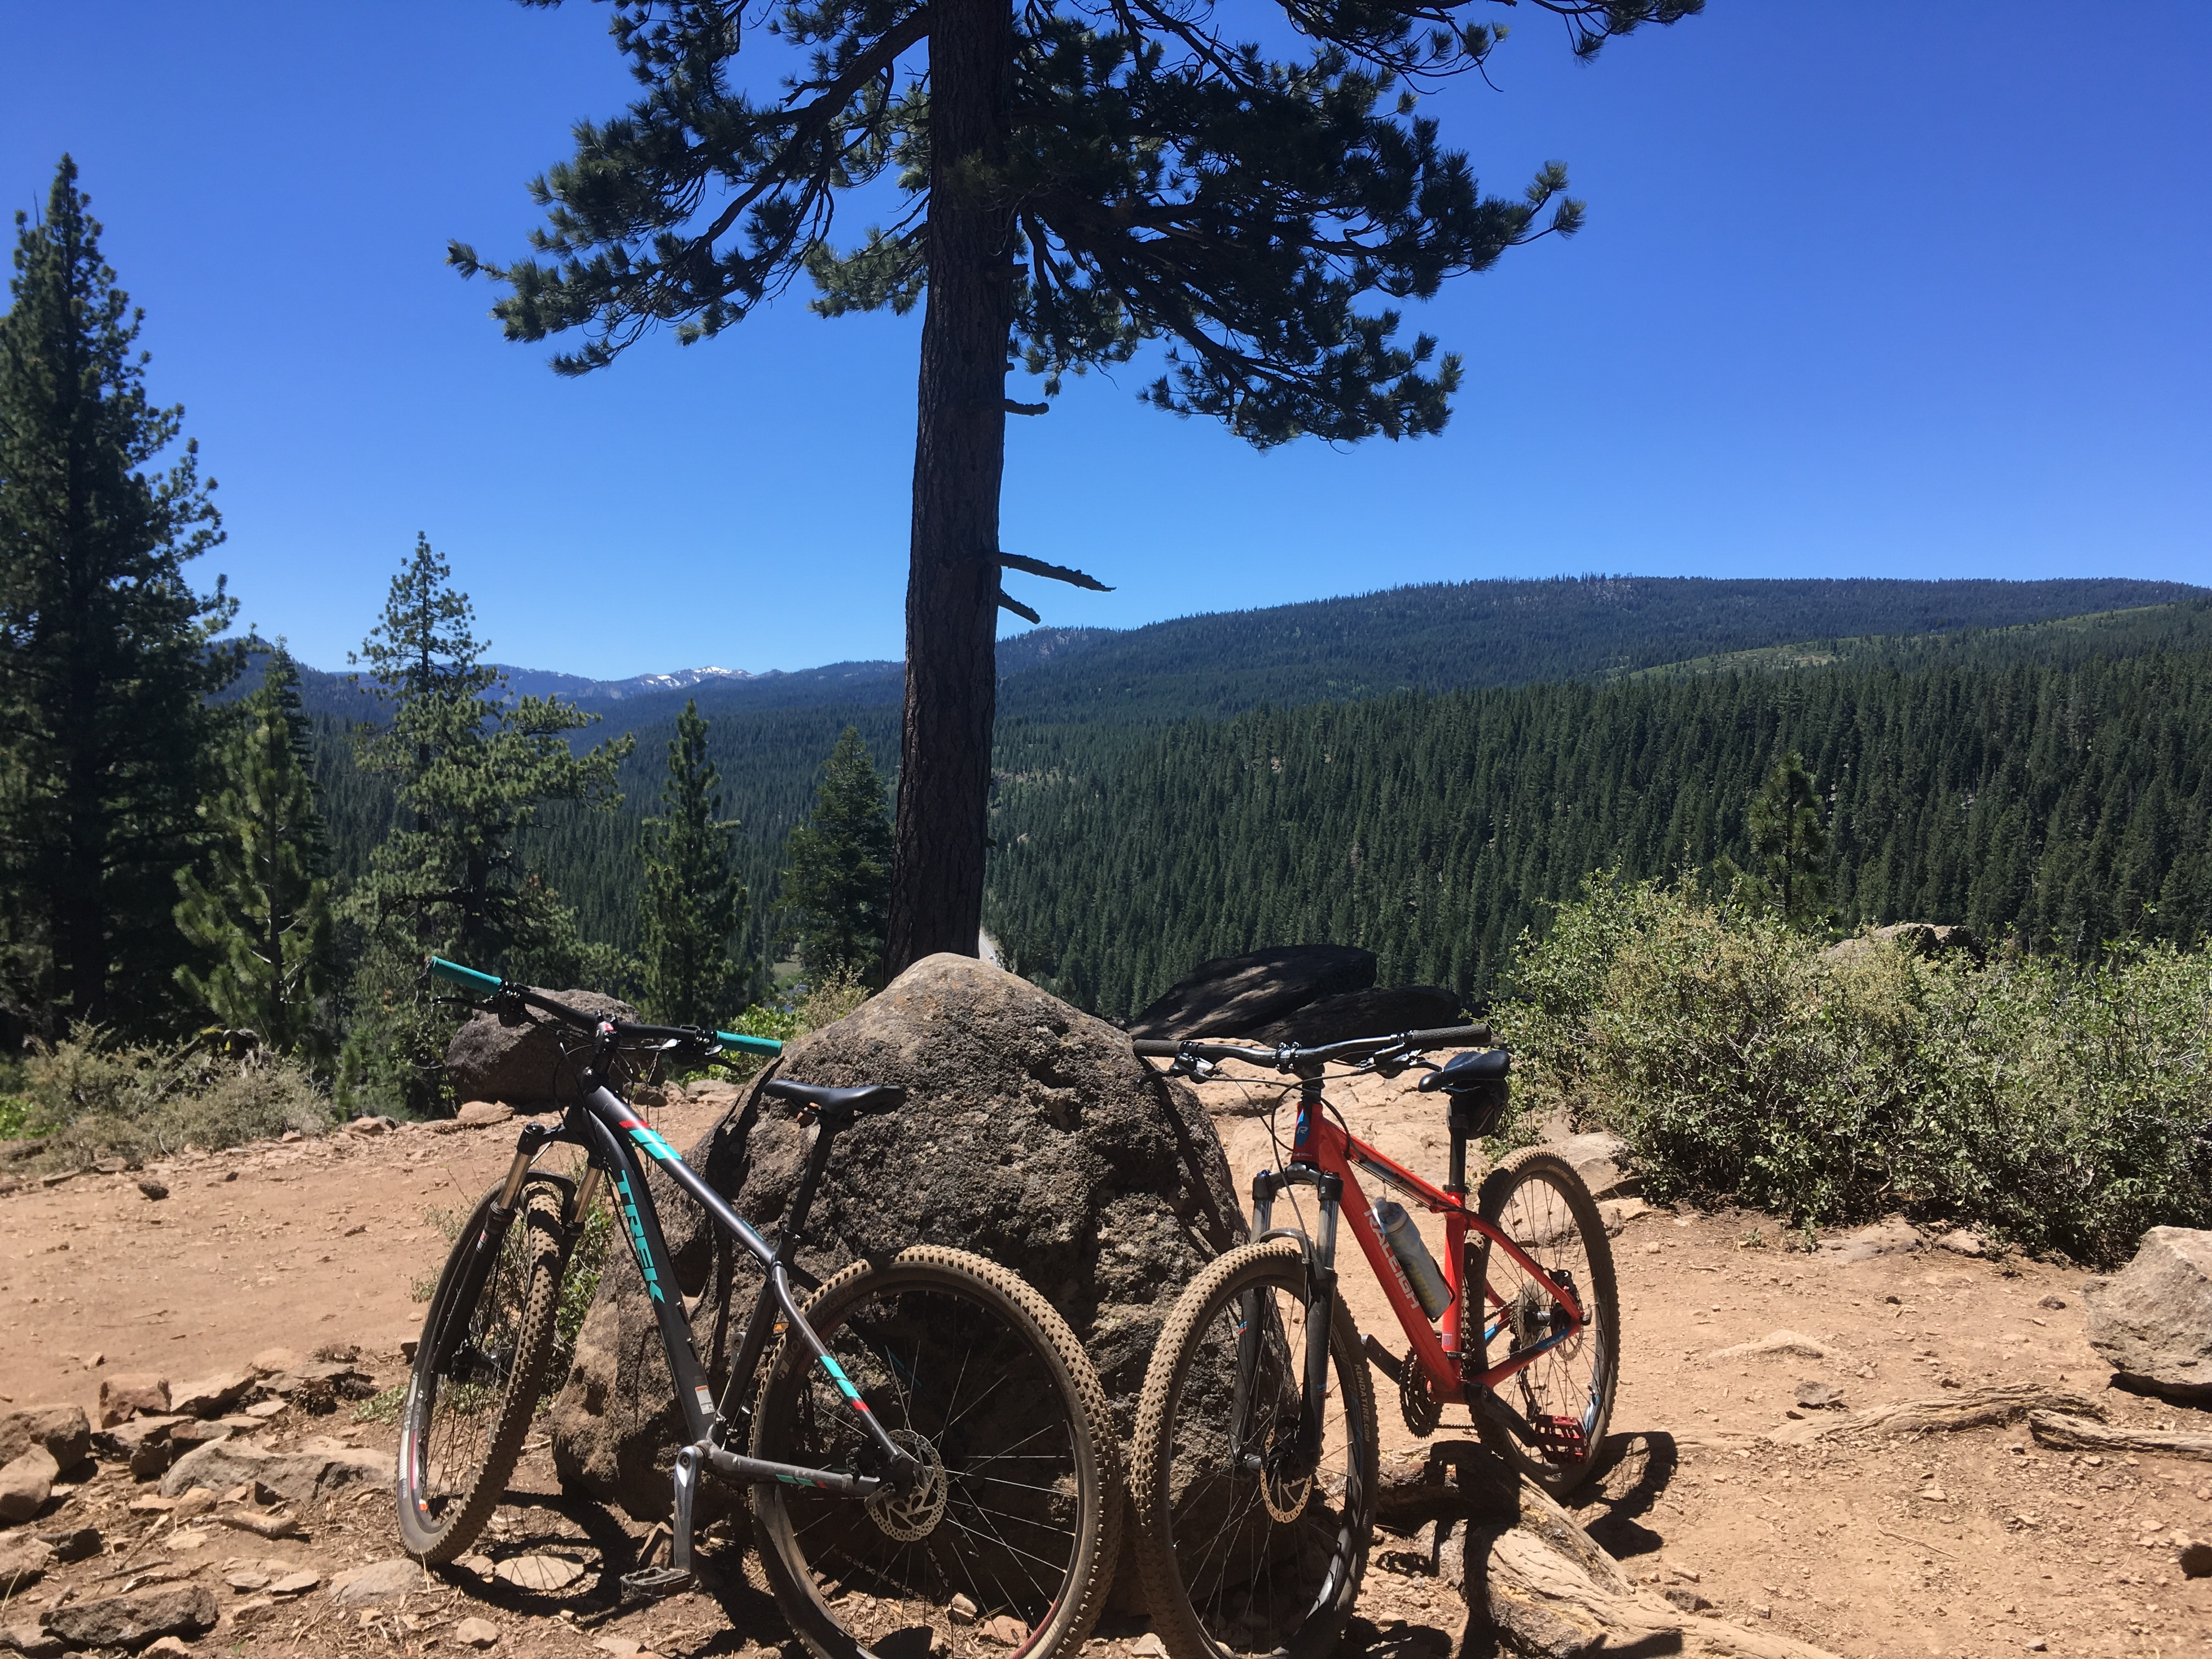 Two mountain bikes, propped up on a rock next to a trail near Truckee, California.